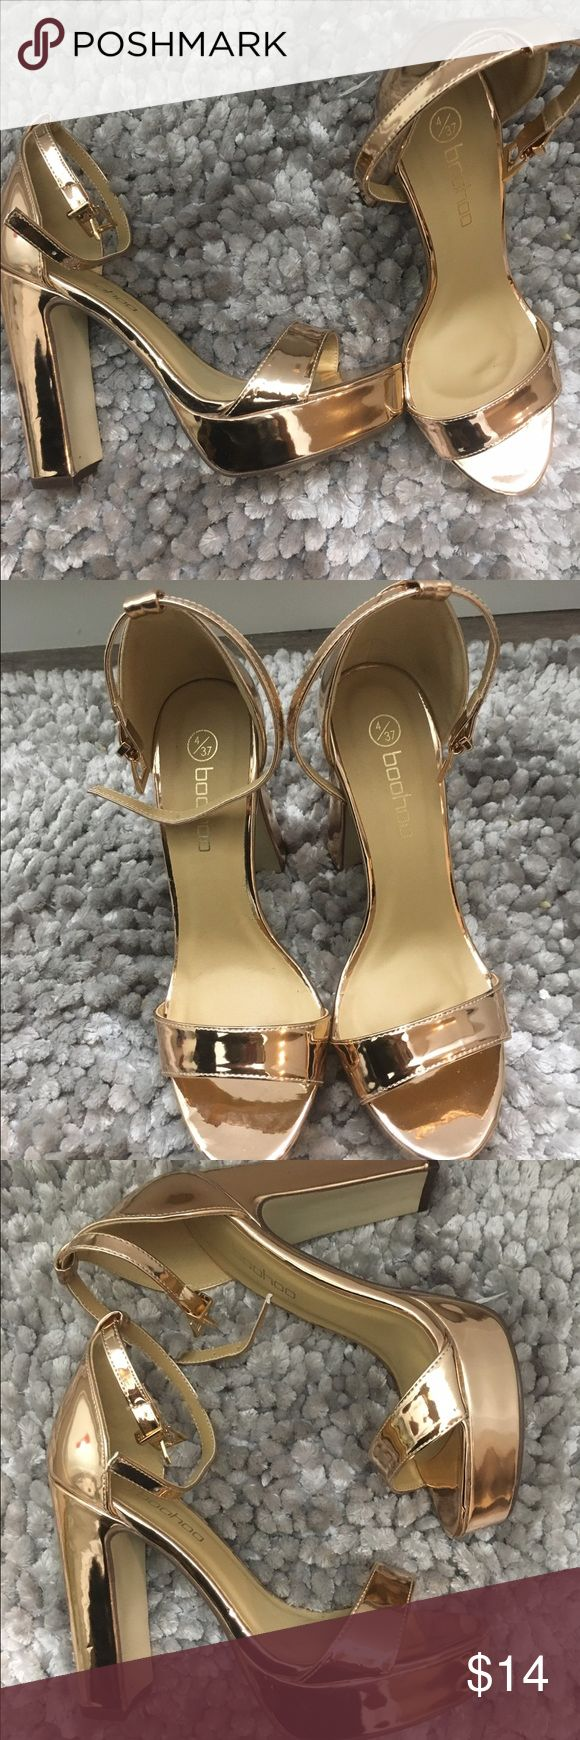 Rose Gold Chunky Heels ll Platforms Rose gold chunky heels with ankle straps, never worn before! Great for dances, formals, going out, etc. Glossy finish. Brand listed used for exposure, actually purchased from boohoo. Nasty Gal Shoes Heels